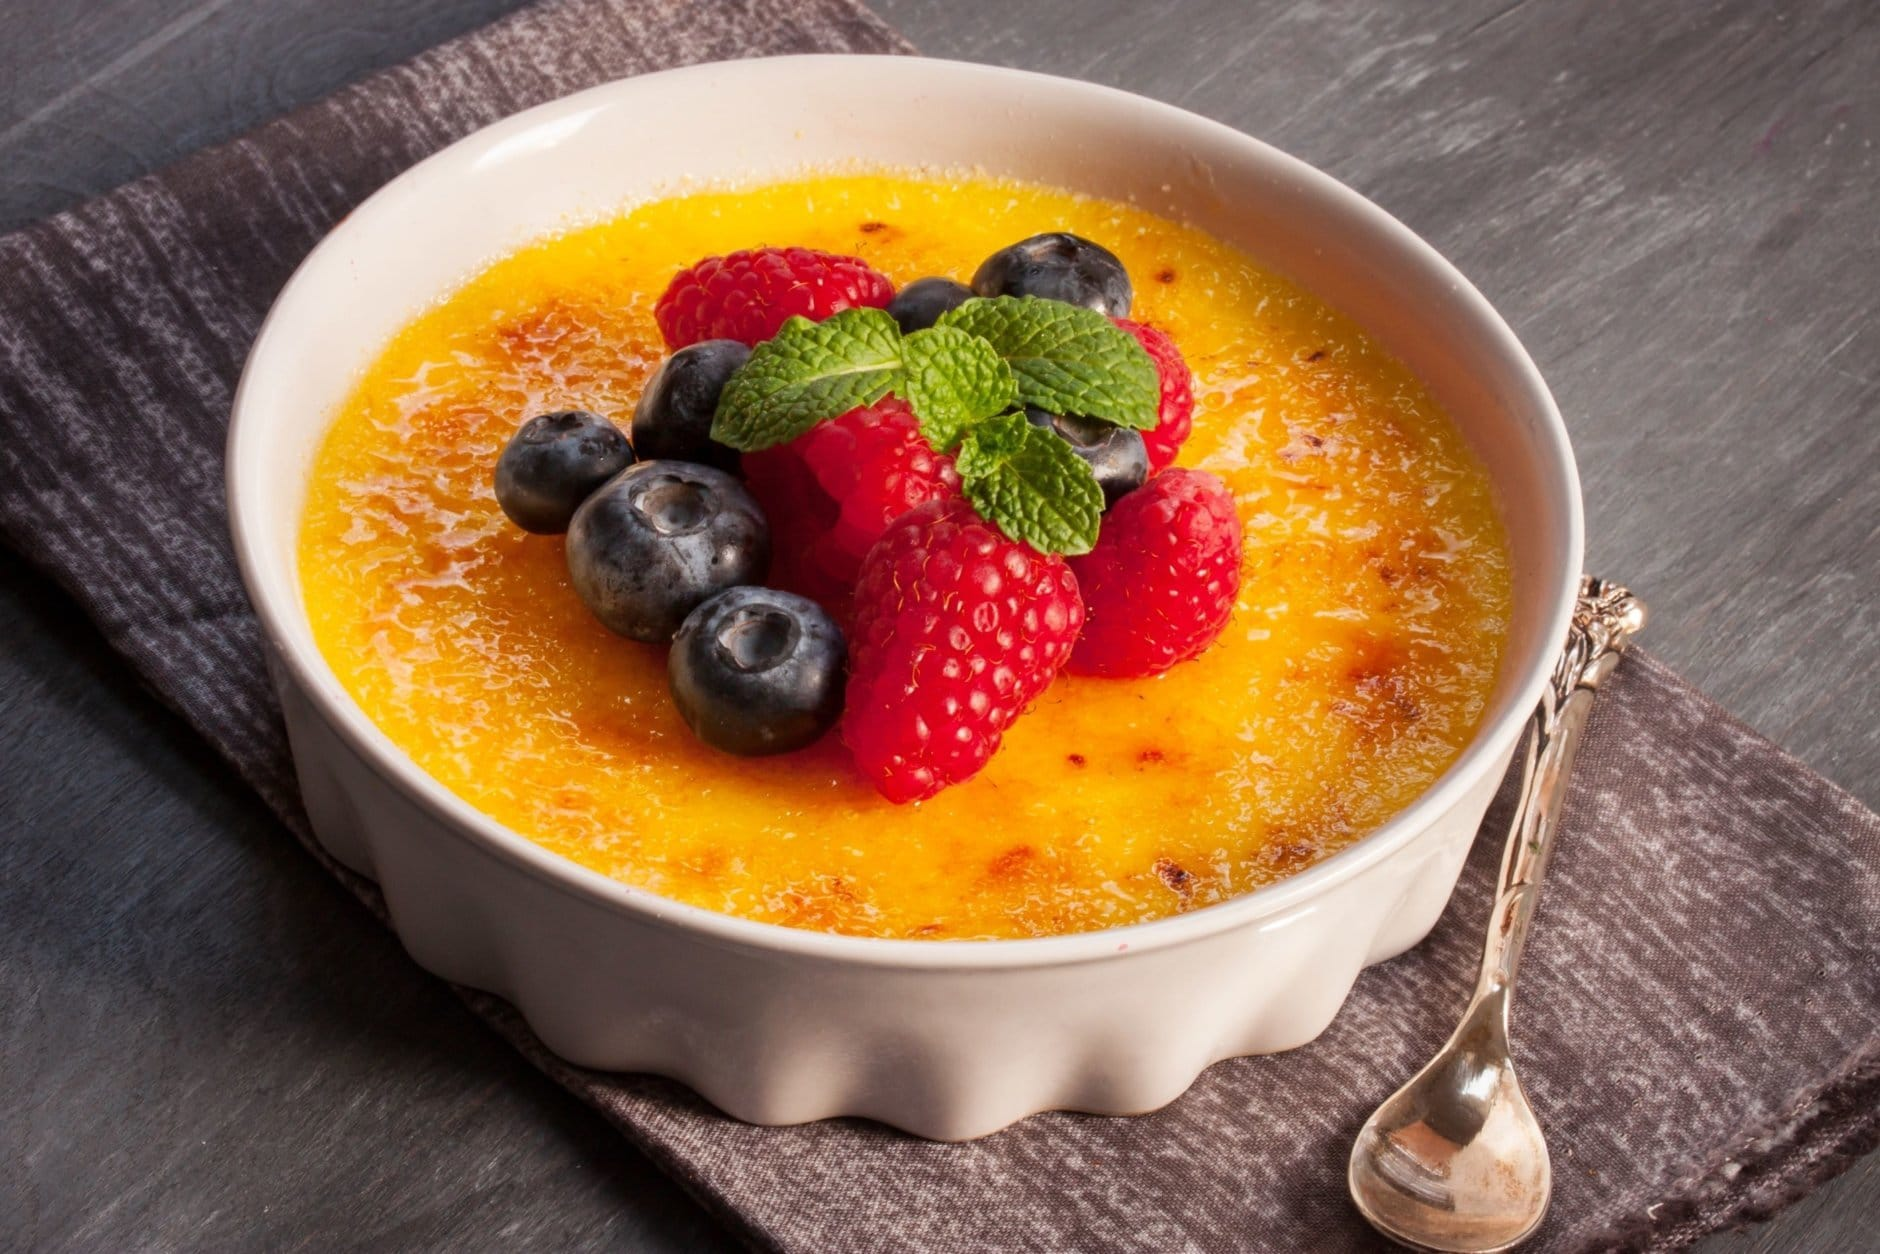 gorgeous French dessert Creme brulee served with berries and a silver spoon